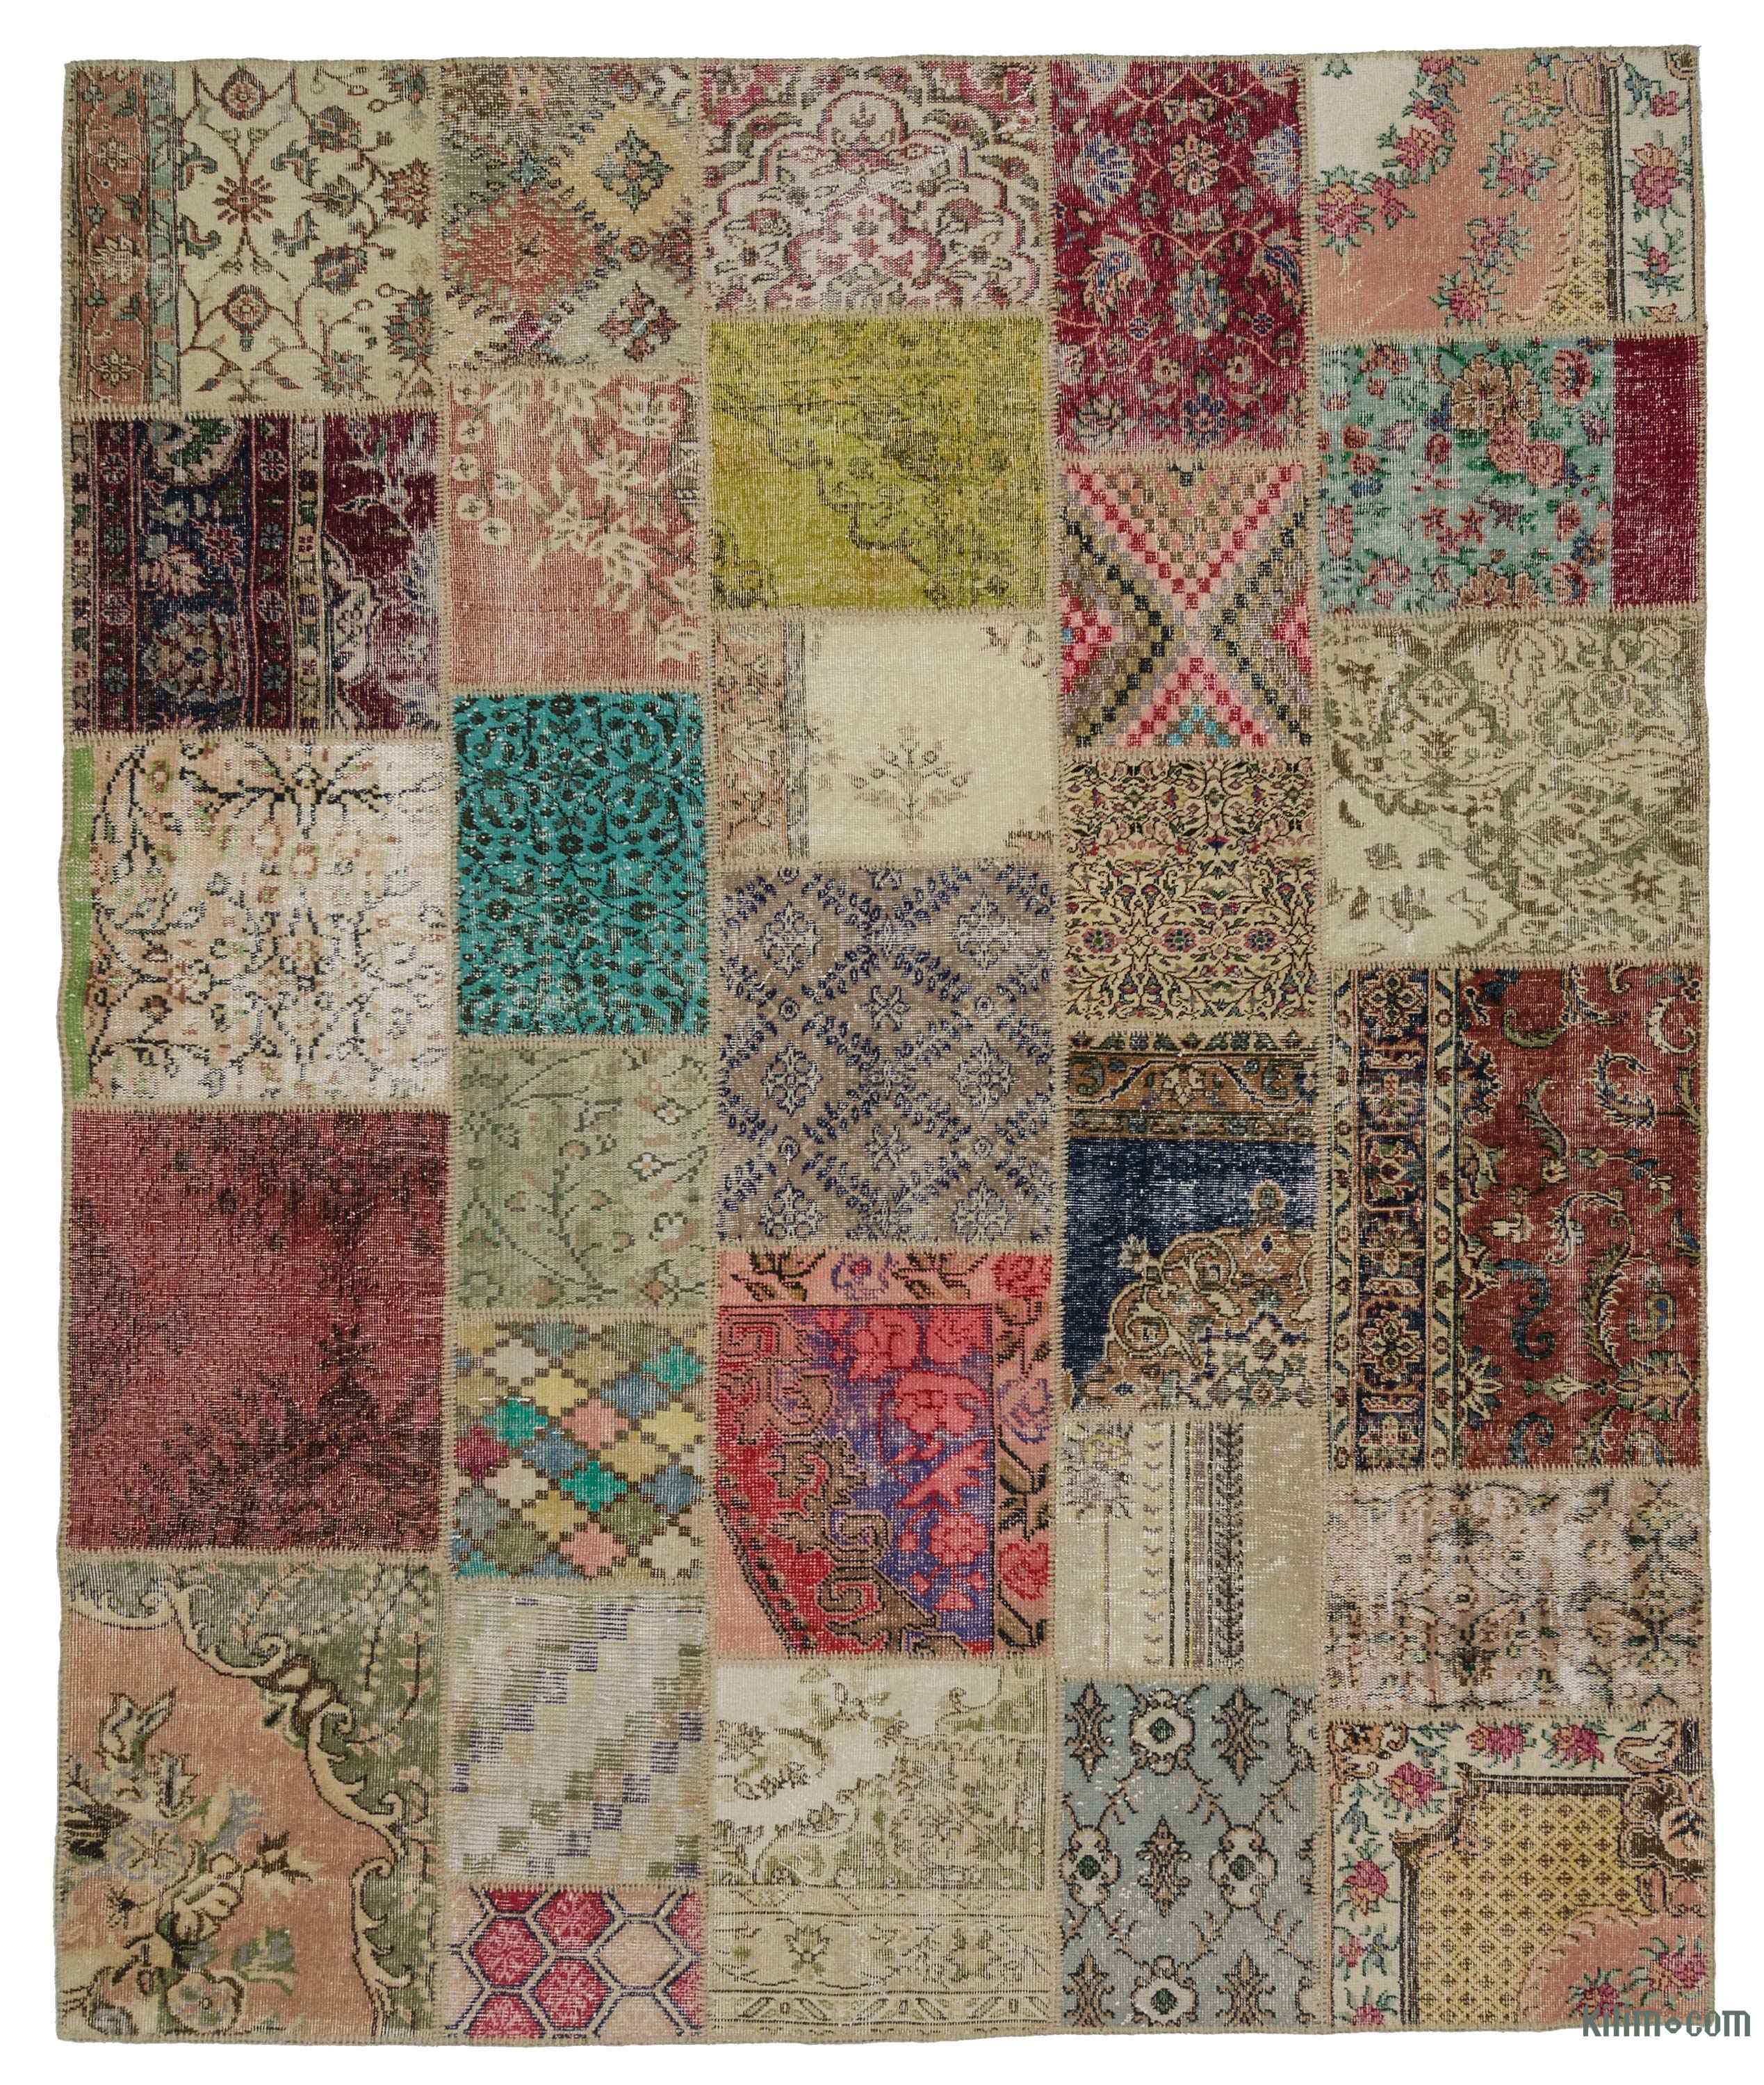 K0021094 Multicolor Turkish Patchwork Rug 8 2 X 9 10